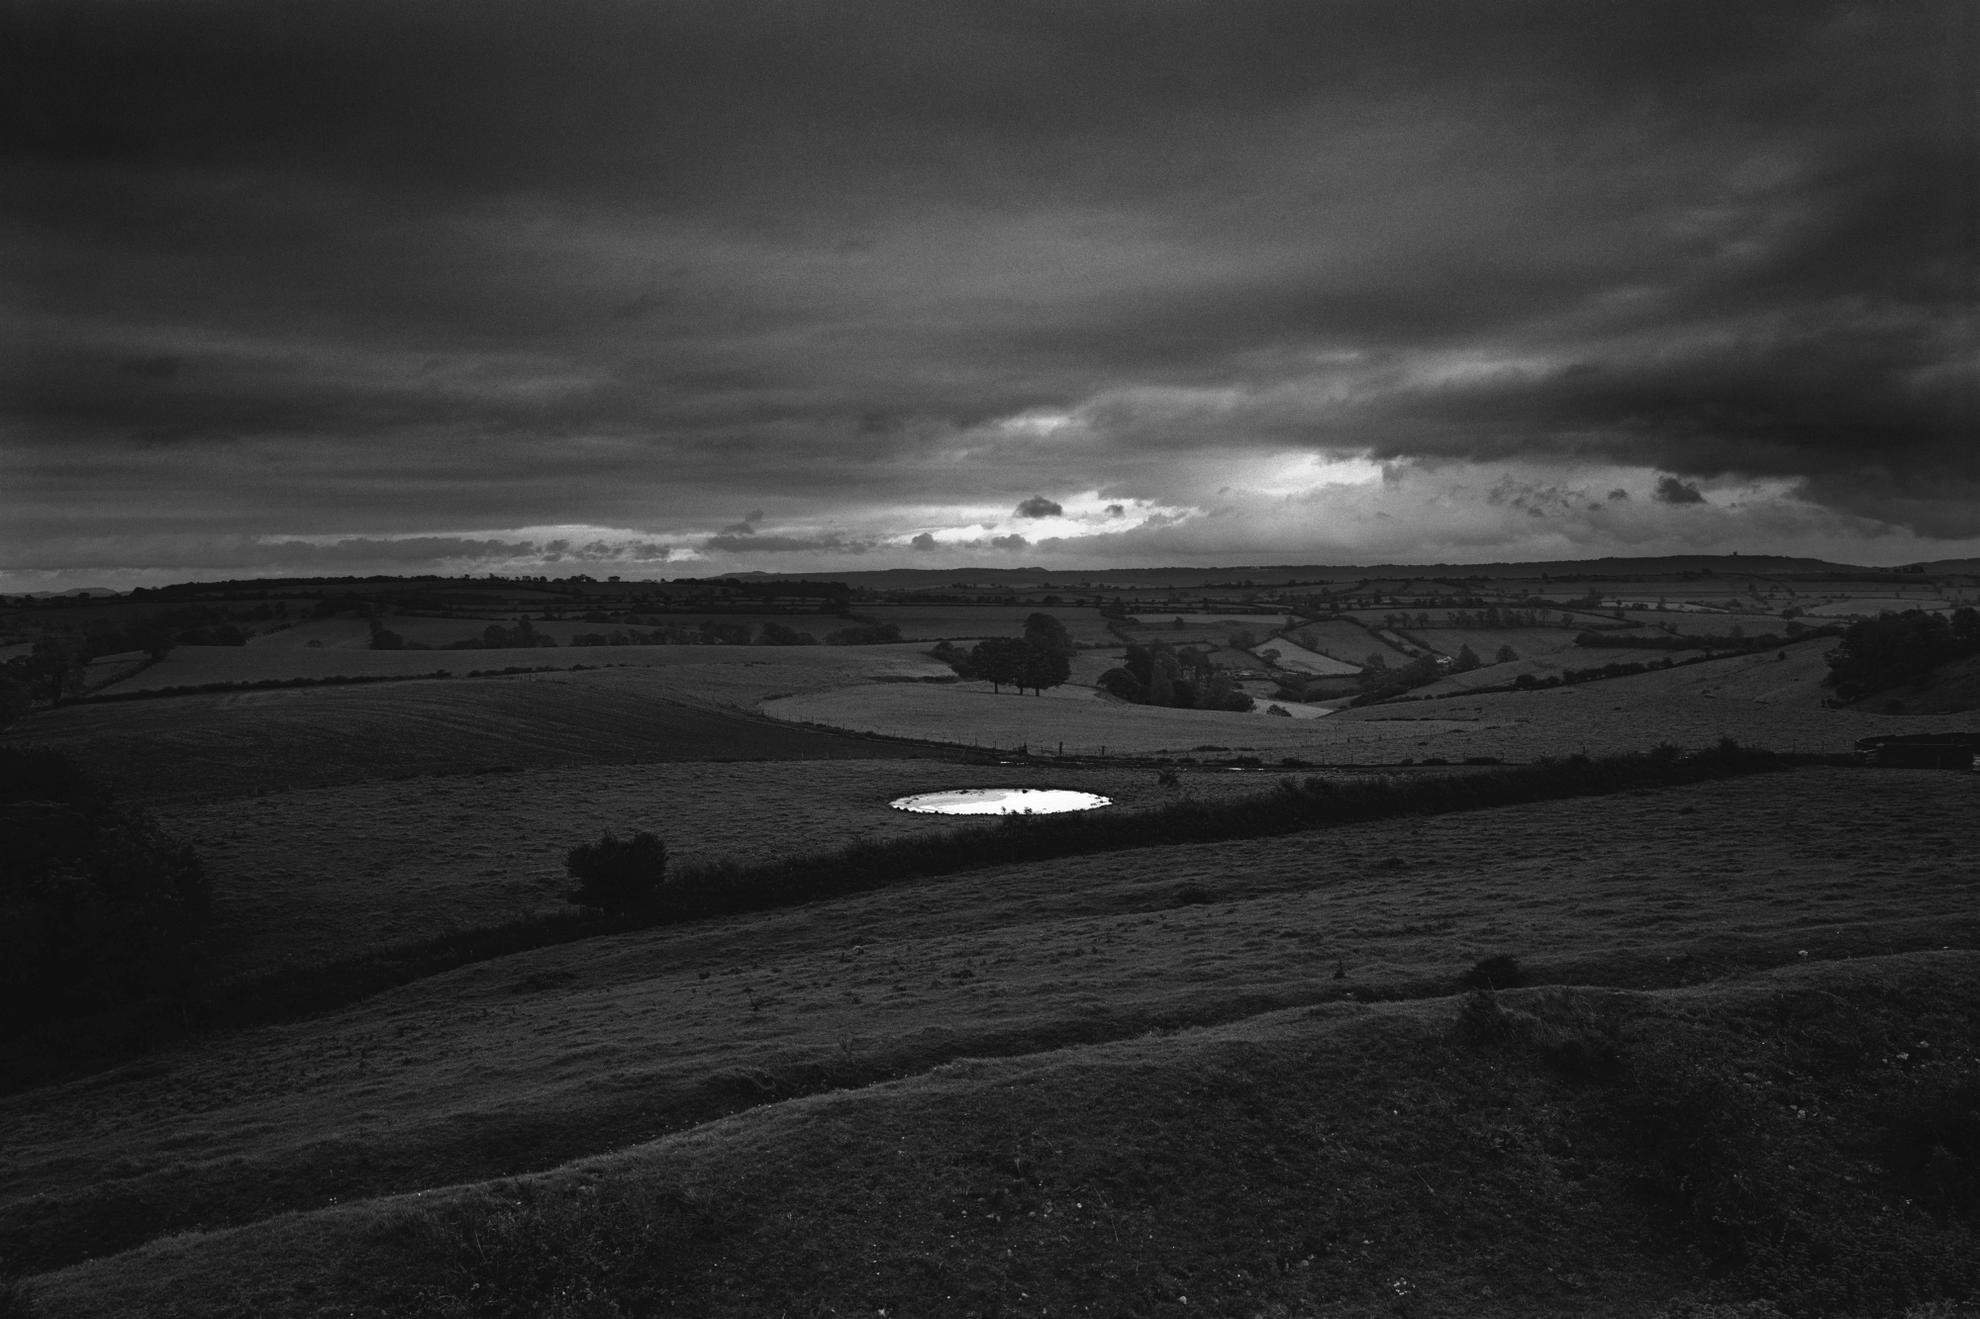 Don Mccullin - Dew-Pond By Iron Age Hill Fort, Somerset, 1988-1988